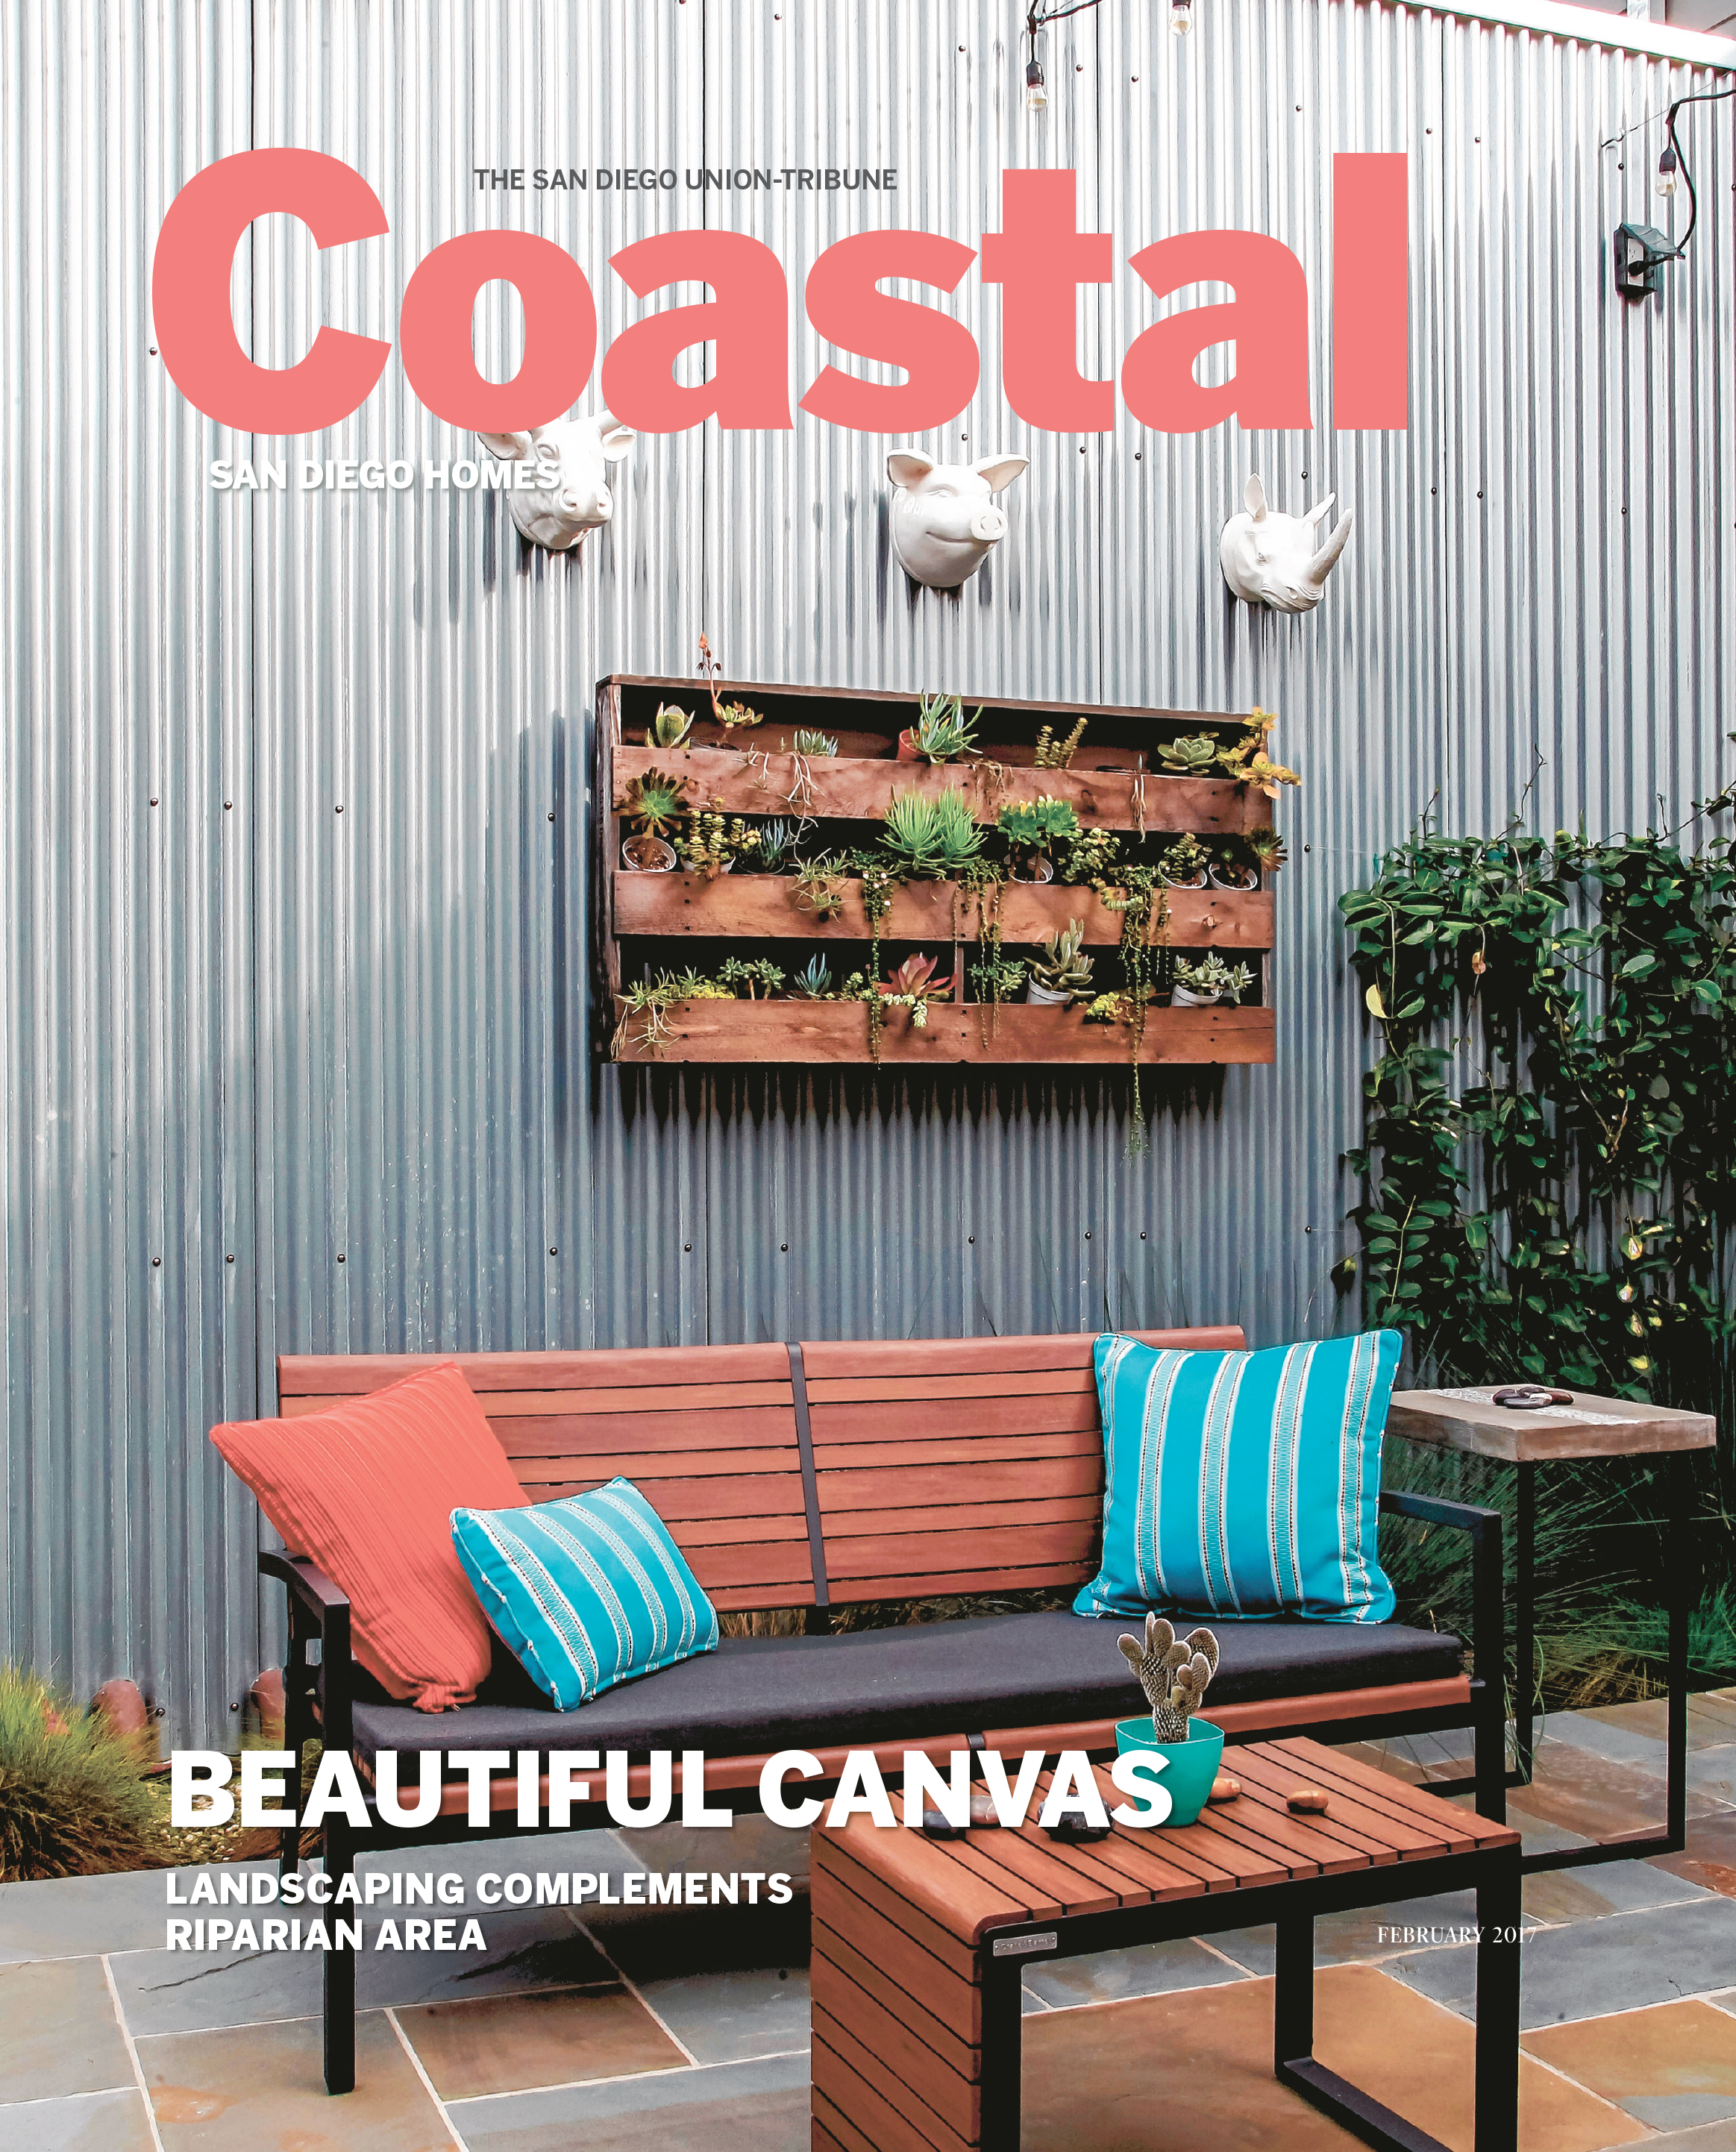 As featured in the 'Coastal'section of The San Diego Union-Tribune...